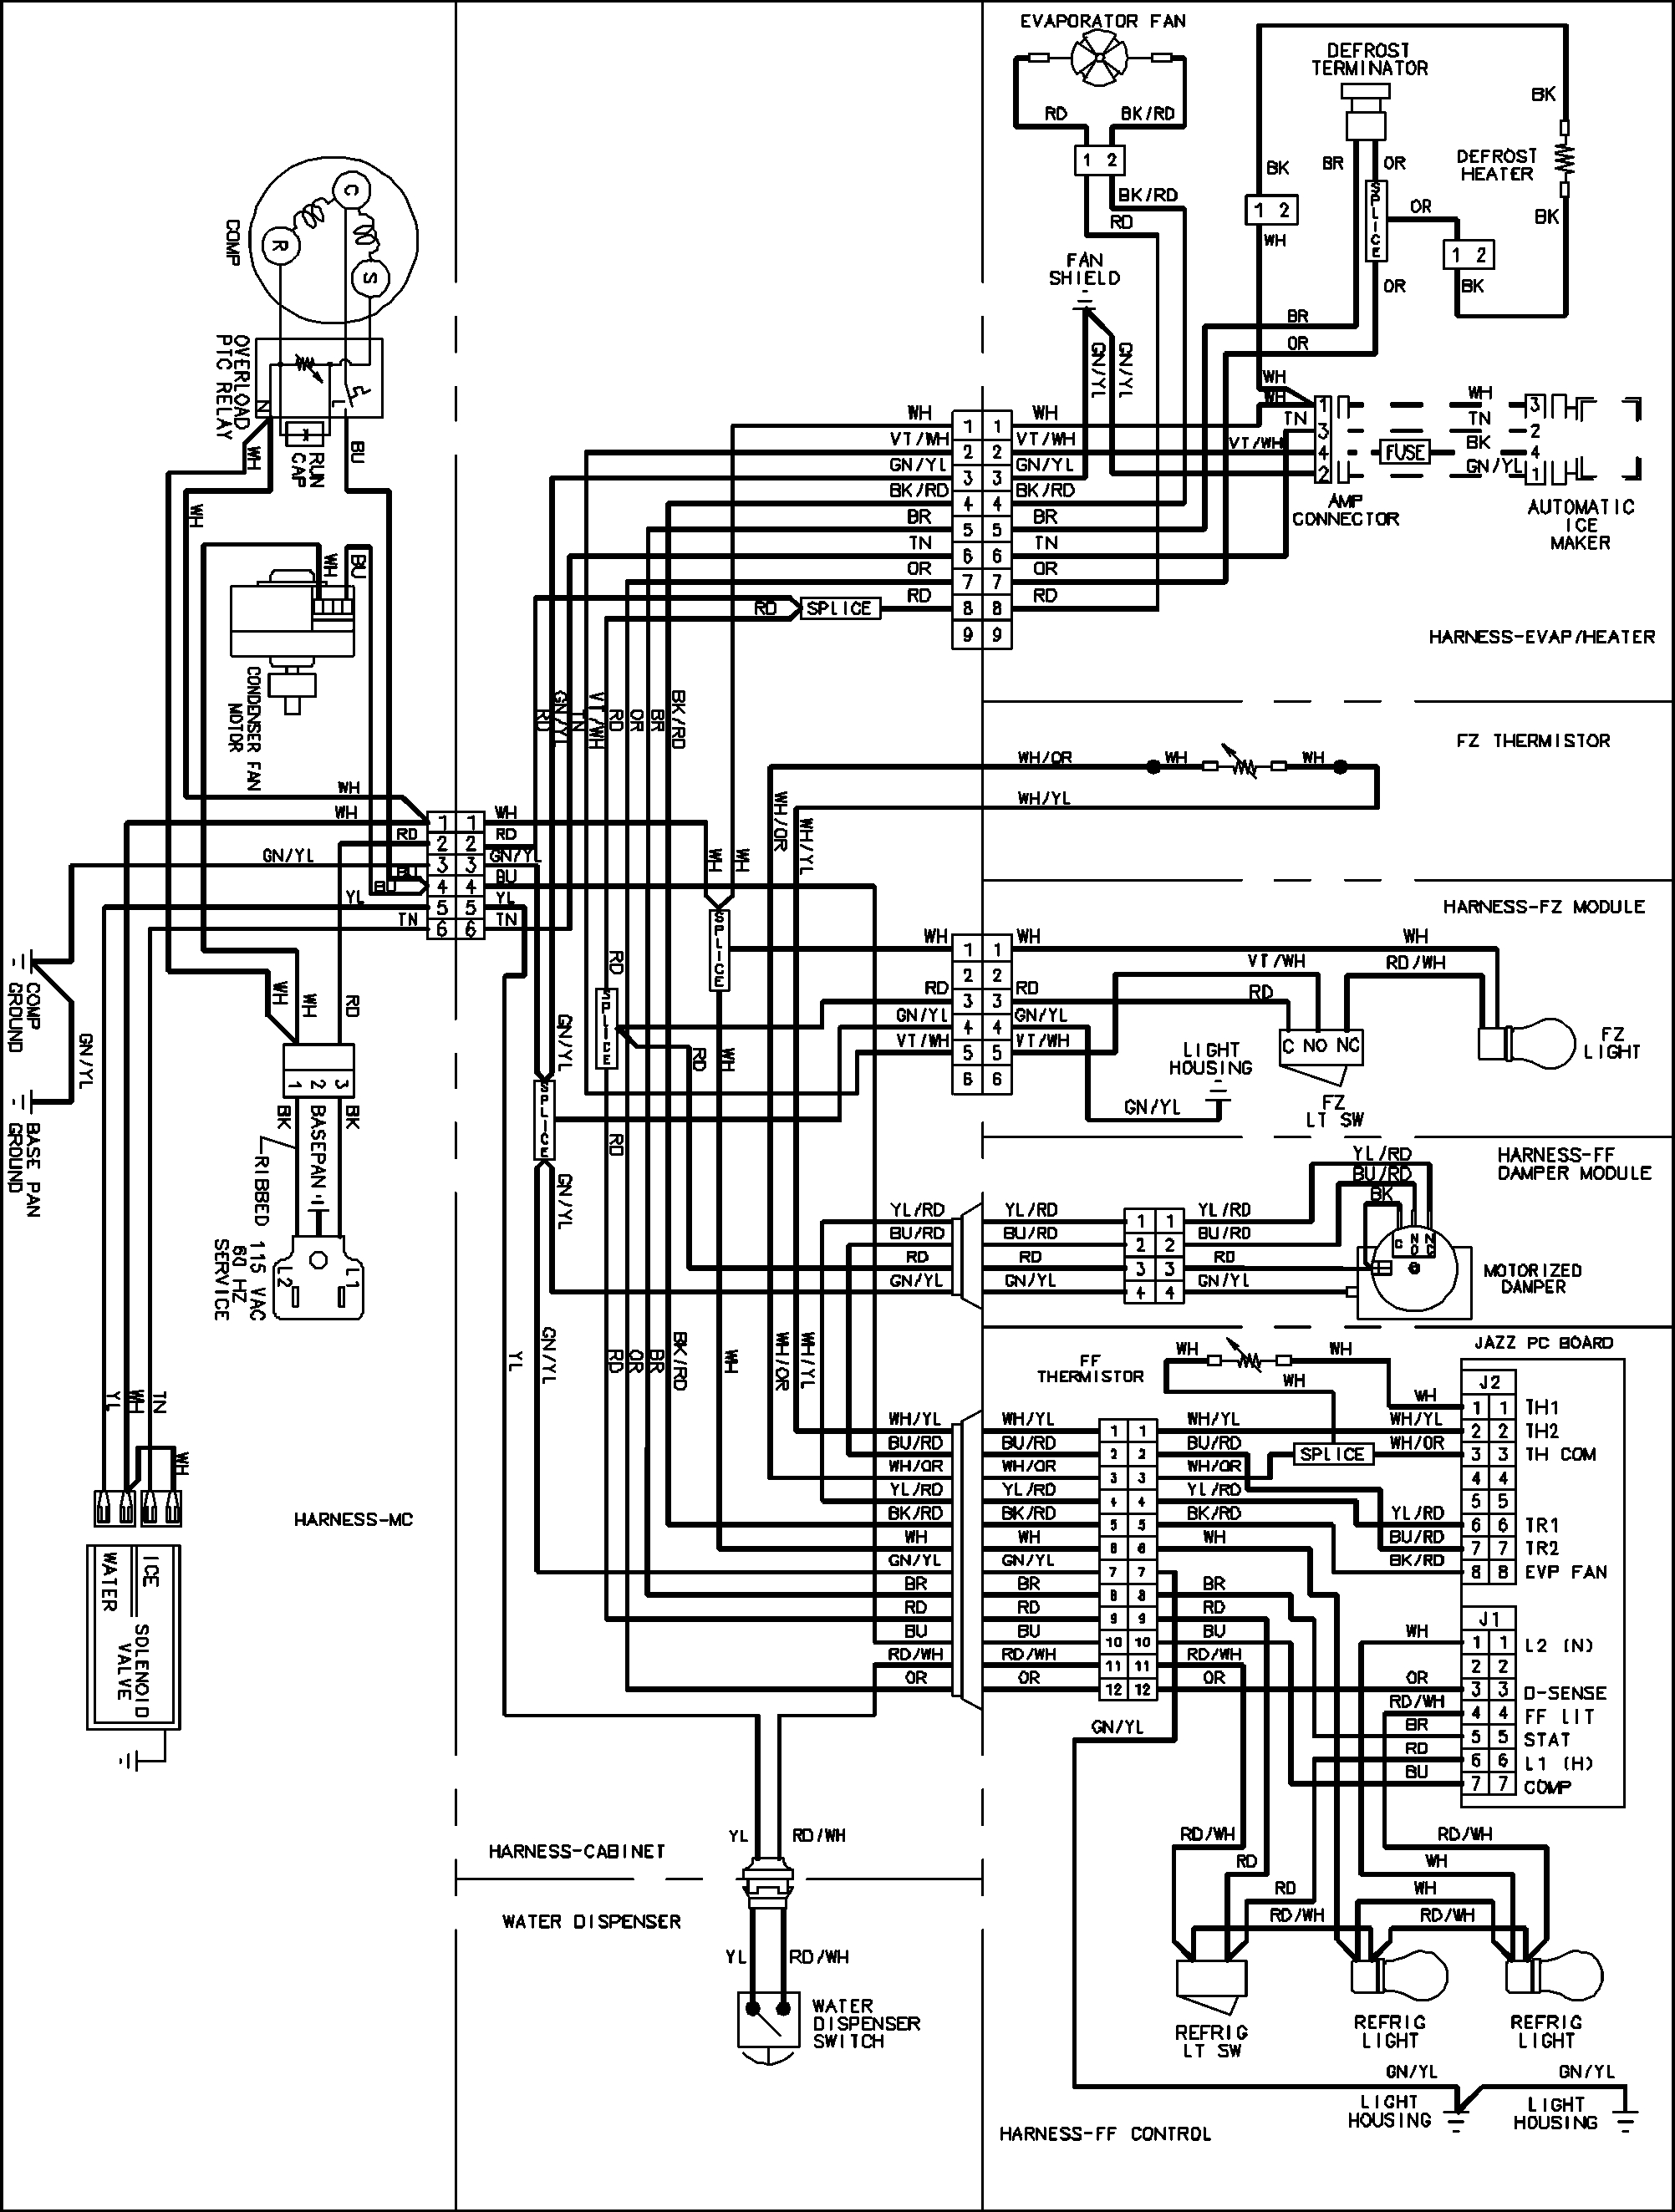 Whirlpool Microwave Wiring Diagram Gallery